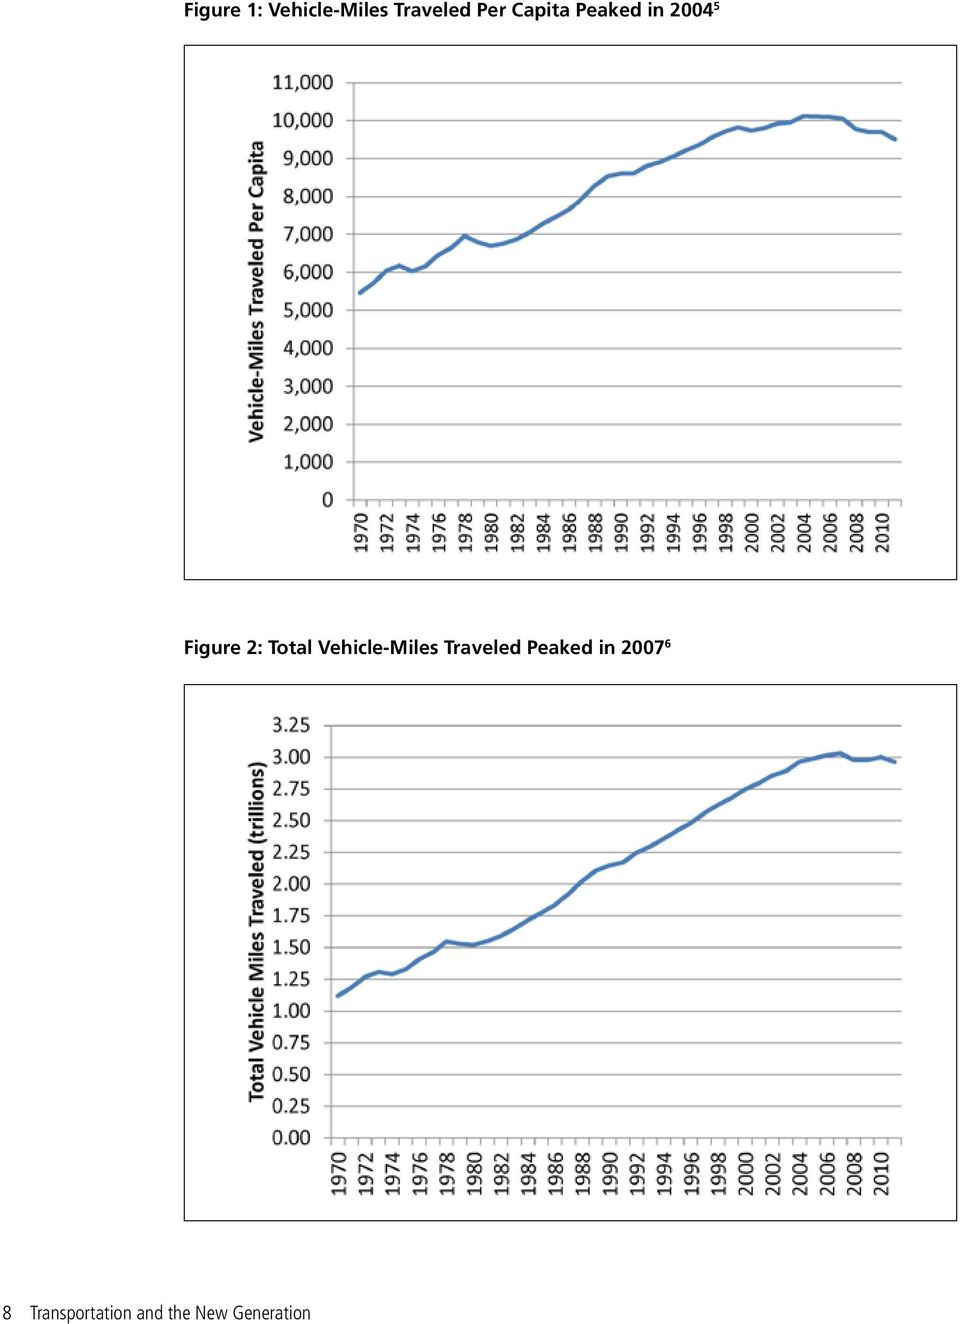 Total Vehicle-Miles Traveled Peaked in